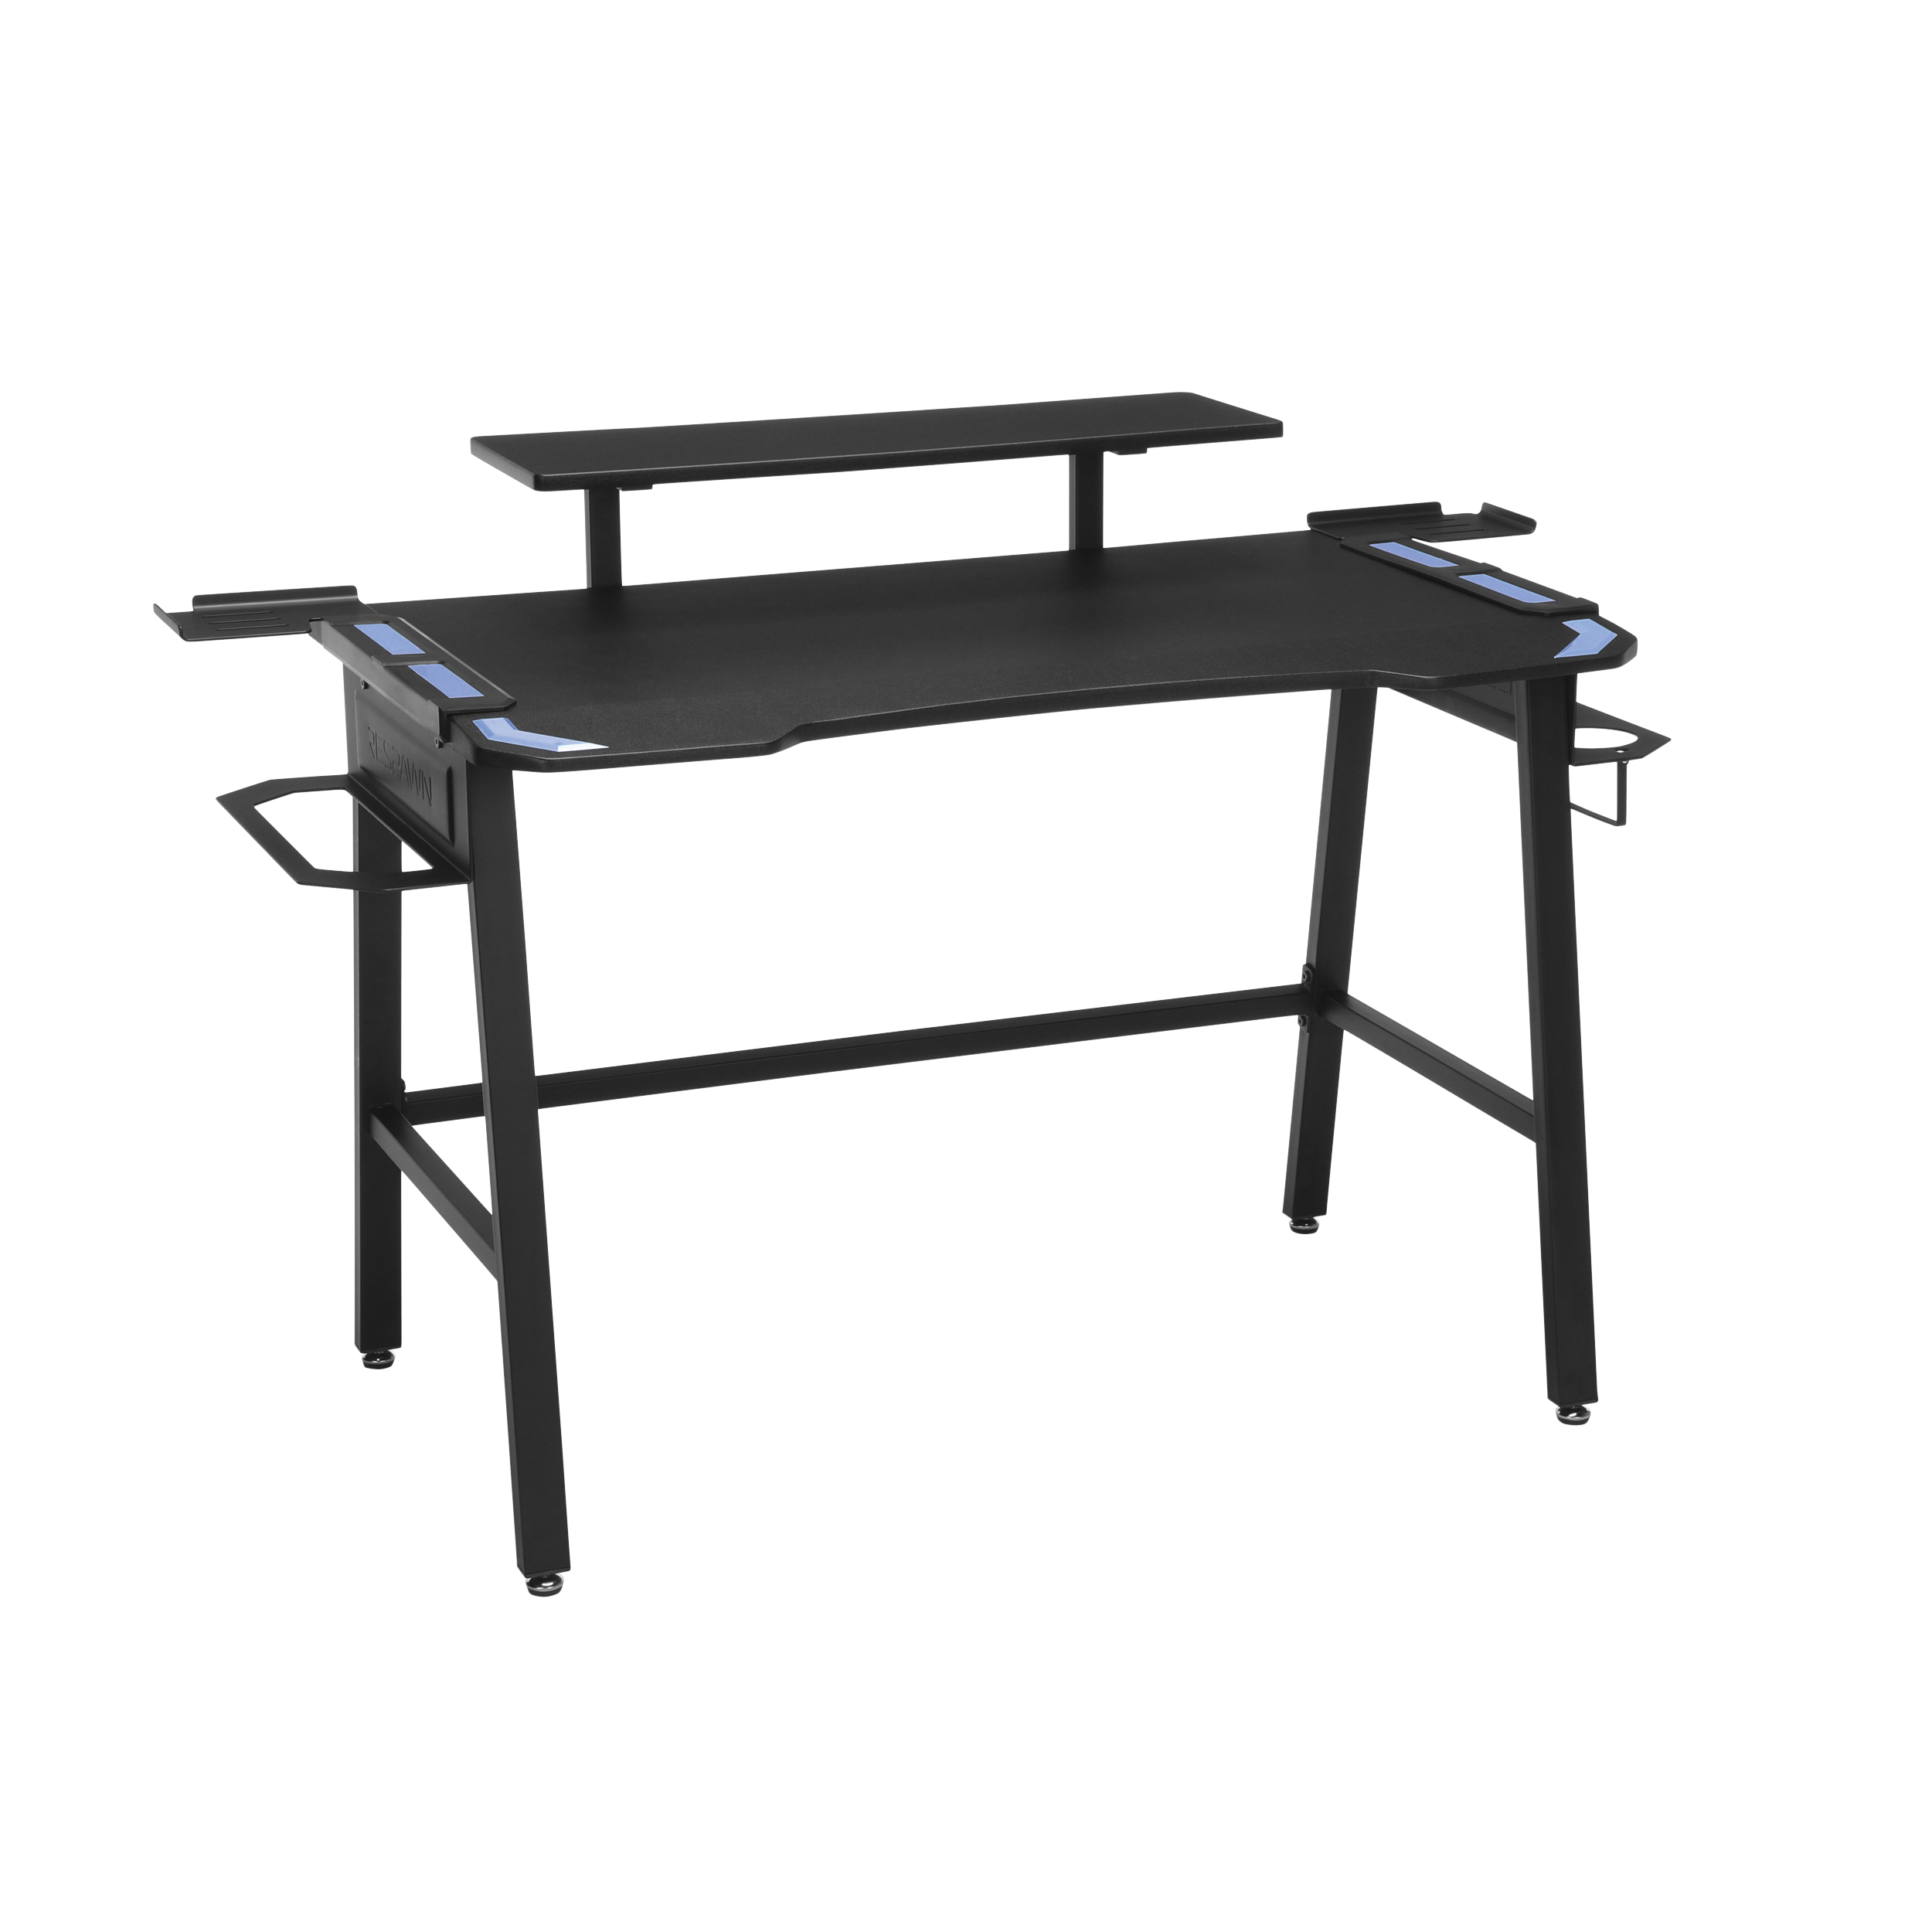 RESPAWN 1010 Gaming Computer Desk, in Blue (RSP-1010-BLU)